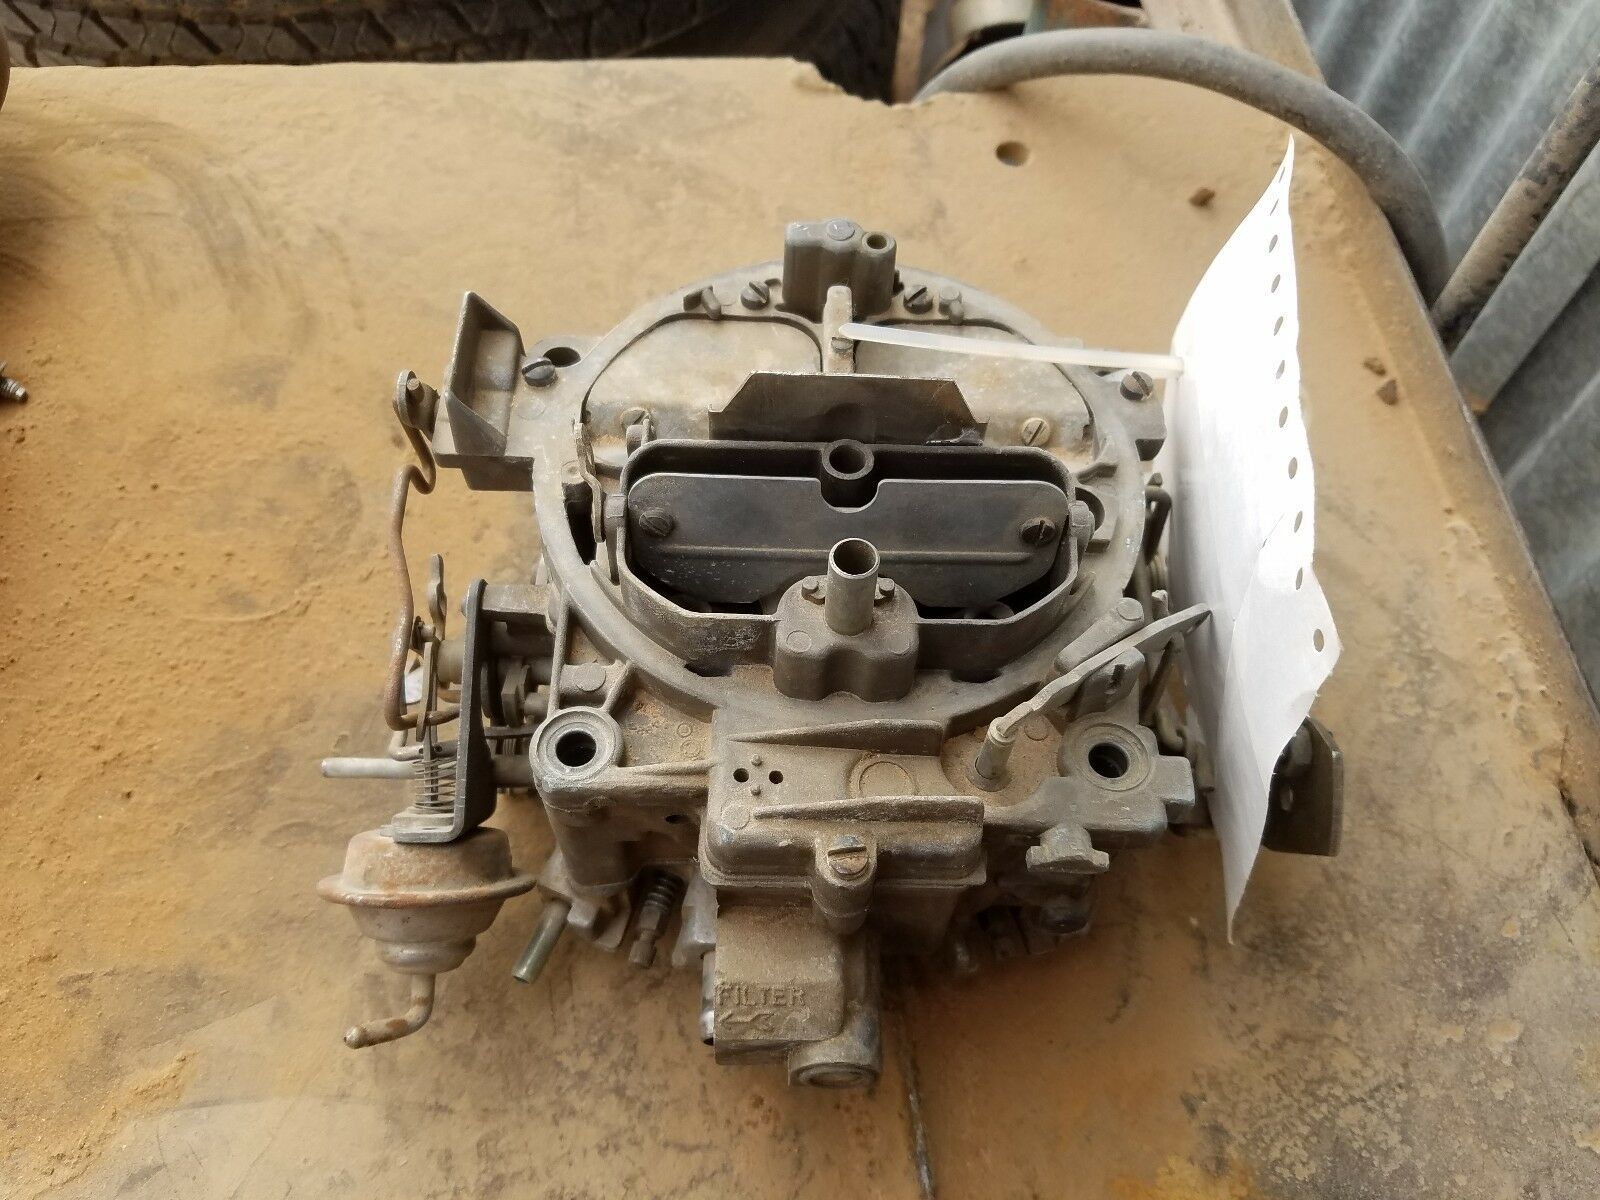 Up For Sale Is A Rebuild Able Carter Quadrajet Carburetor This